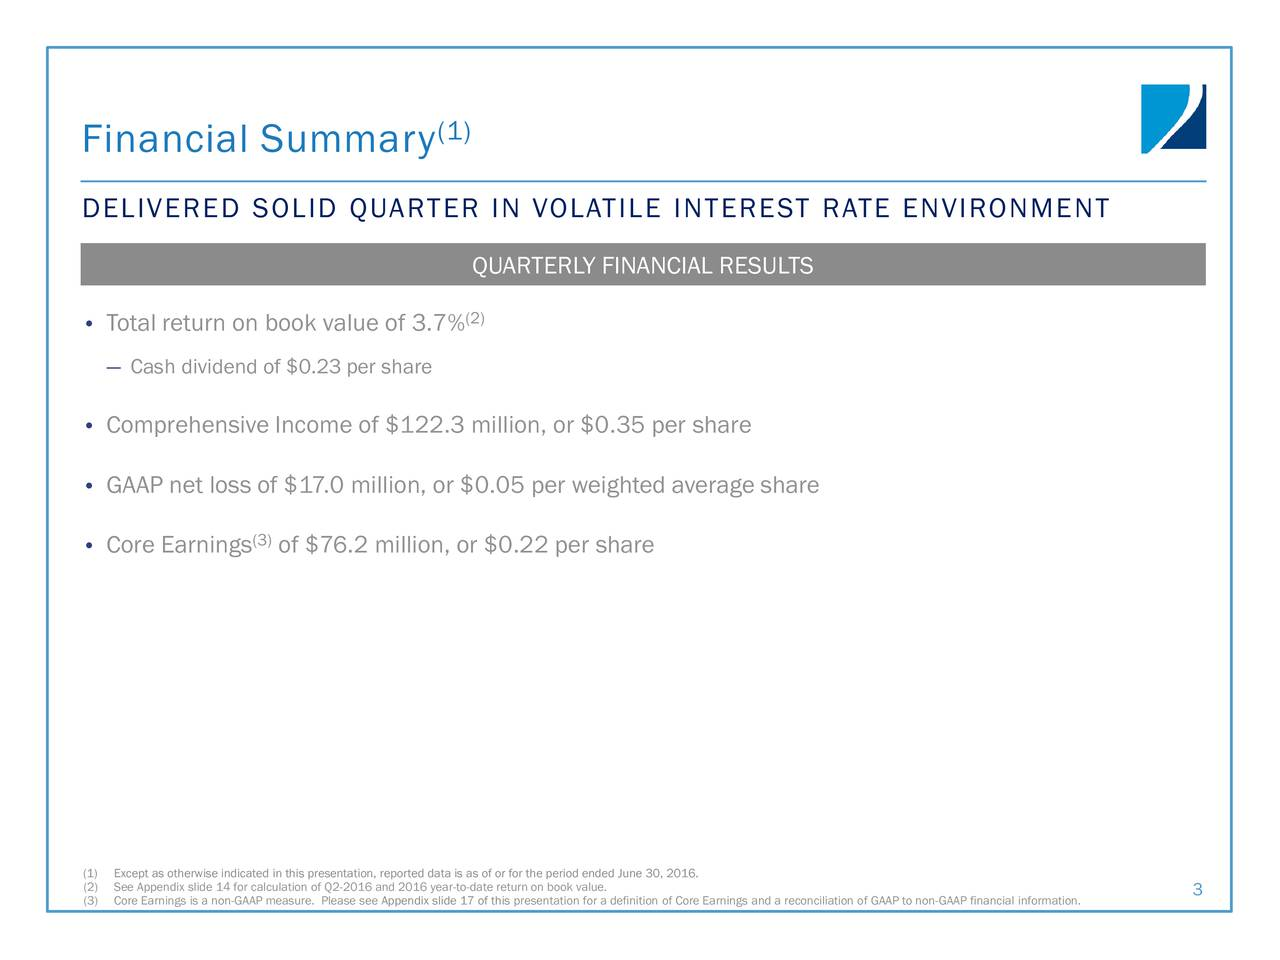 DELIVERED SOLID QUARTER IN VOLATILE INTEREST RATE ENVIRONMENT QUARTERLY FINANCIAL RESULTS Total return on book value of 3.7% (2) Cash dividend of $0.23 per share Comprehensive Income of $122.3 million, or $0.35 per share GAAP net loss of $17.0 million, or $0.05 per weighted average share Core Earnings (3of $76.2 million, or $0.22 per share (1)Except as otherwise indicated in this presentation, reported data is as of or for the period ended June 30, 2016. (3)Core Earnings is a non-GAAP measure. Please see Appendix slide 17 of this presentation for a definition of Core Earnings and a reconciliation of GAAP to non-GAAP financial information.